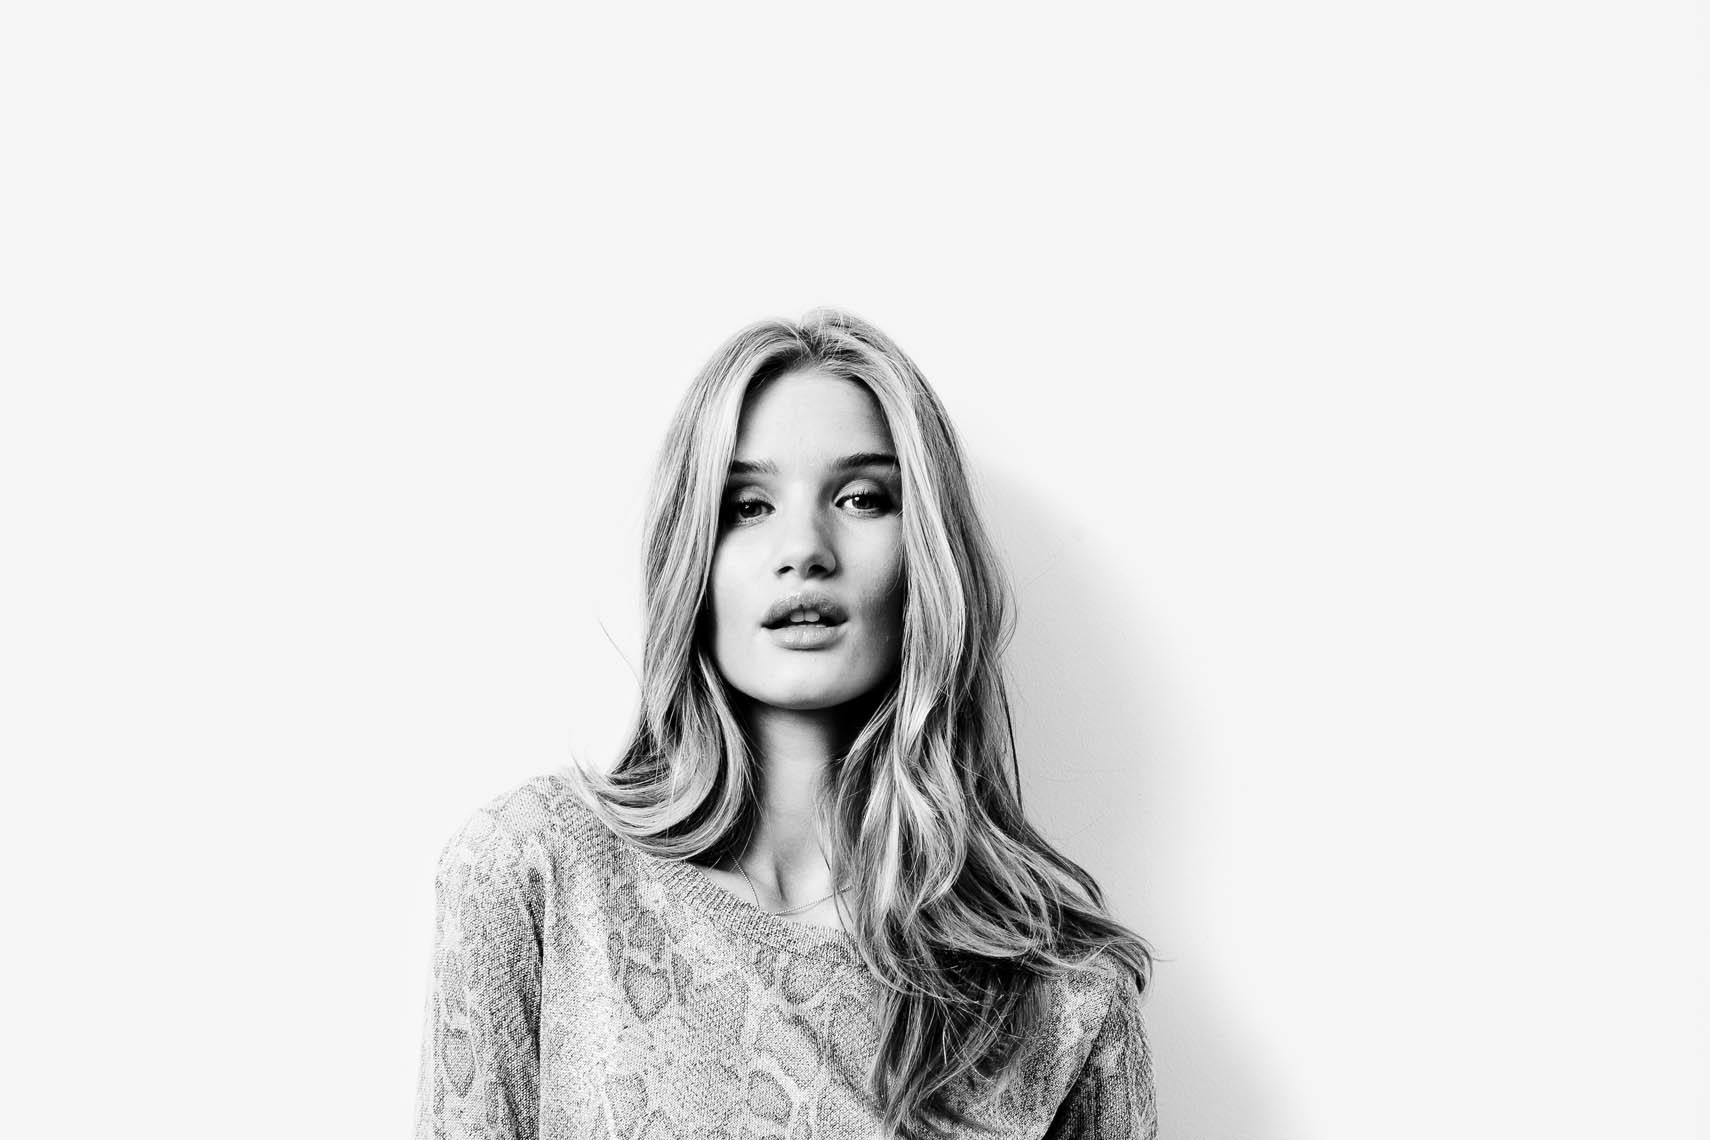 12_01_Estilo_Rosie_Huntington-Whiteley-22-2_8bit_sharp